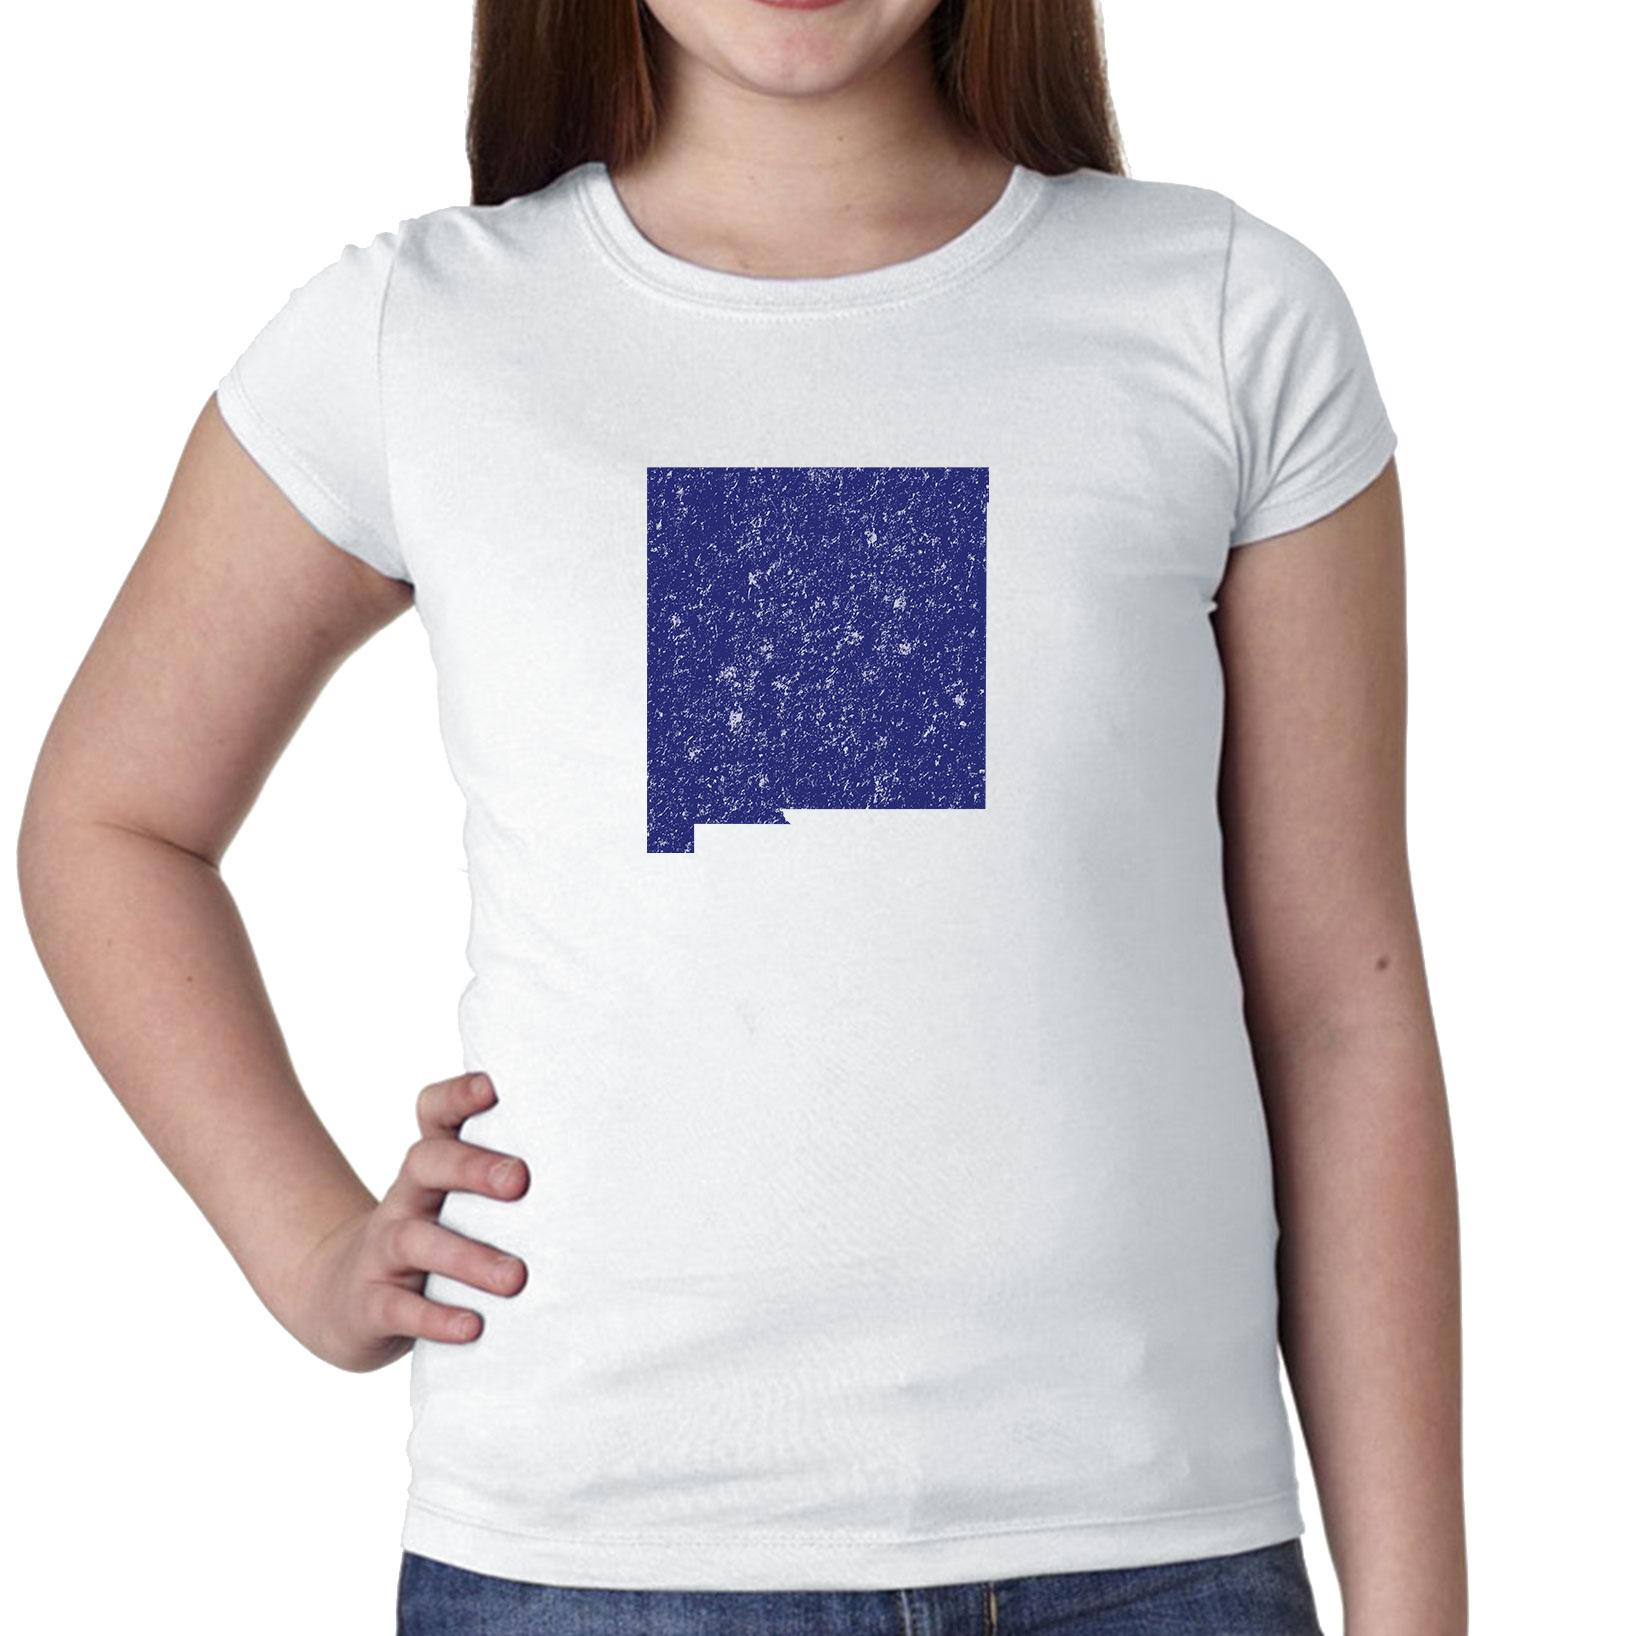 New Mexico Blue Democratic - Election Silhouette Girl's Cotton Youth T-Shirt